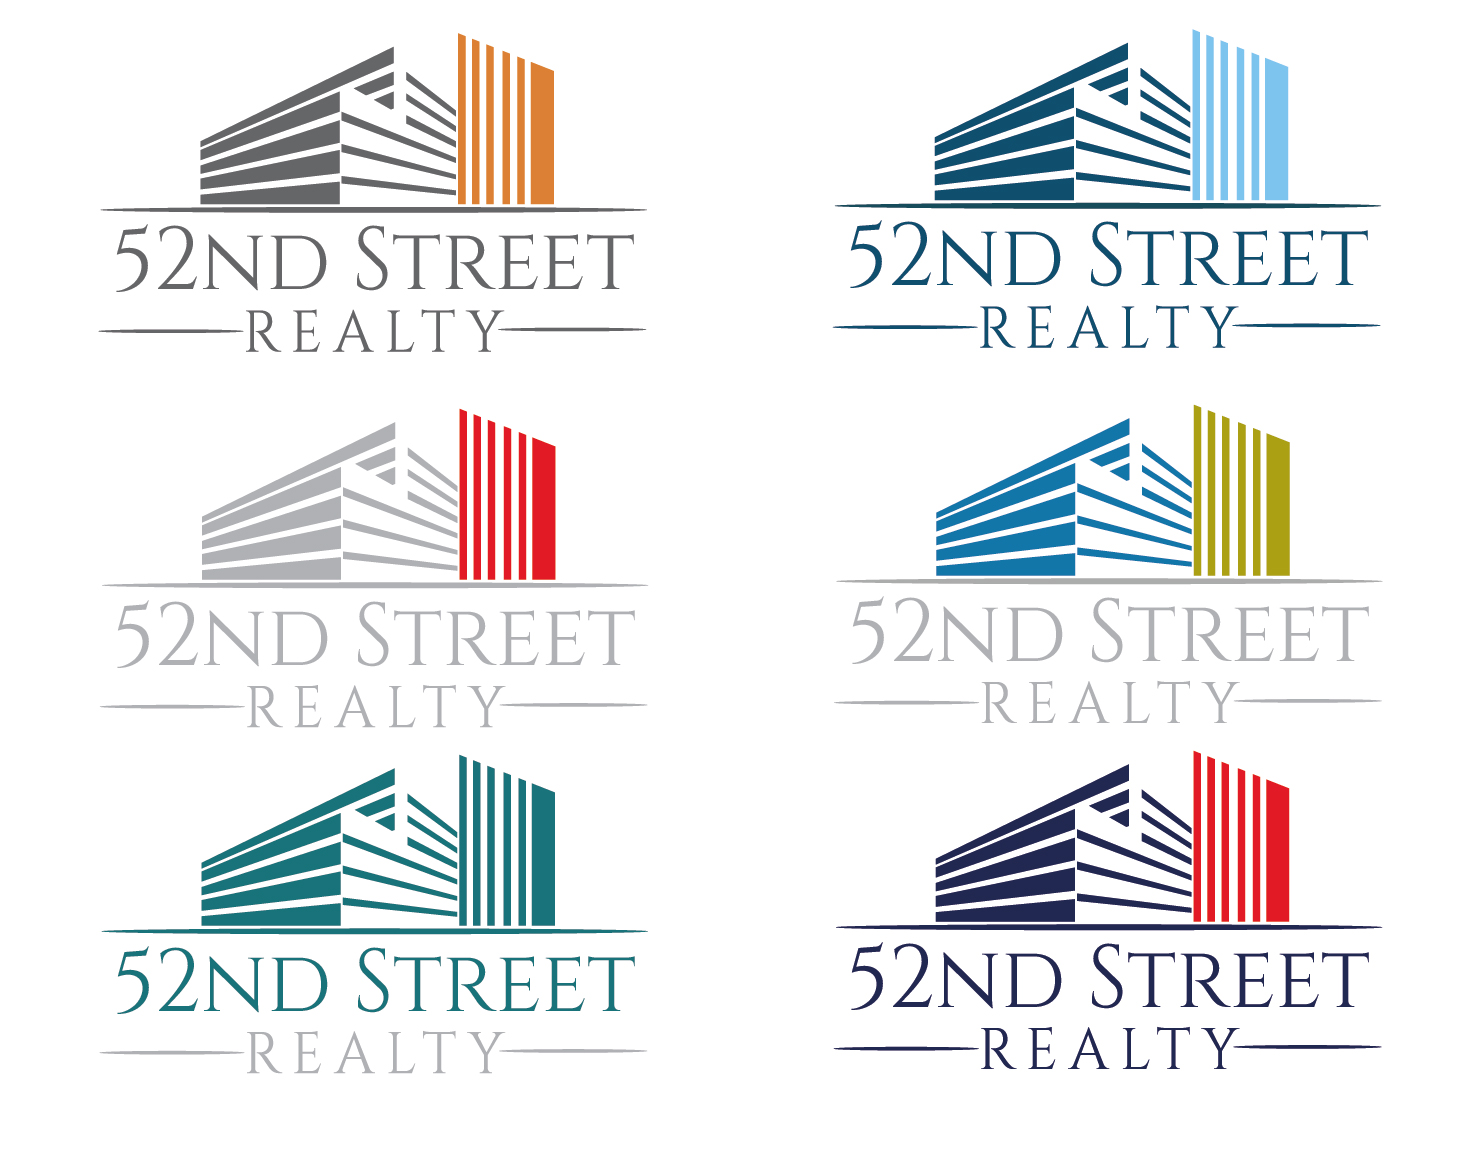 Logo Design by VENTSISLAV KOVACHEV - Entry No. 98 in the Logo Design Contest 52nd Street Realty Logo Design.